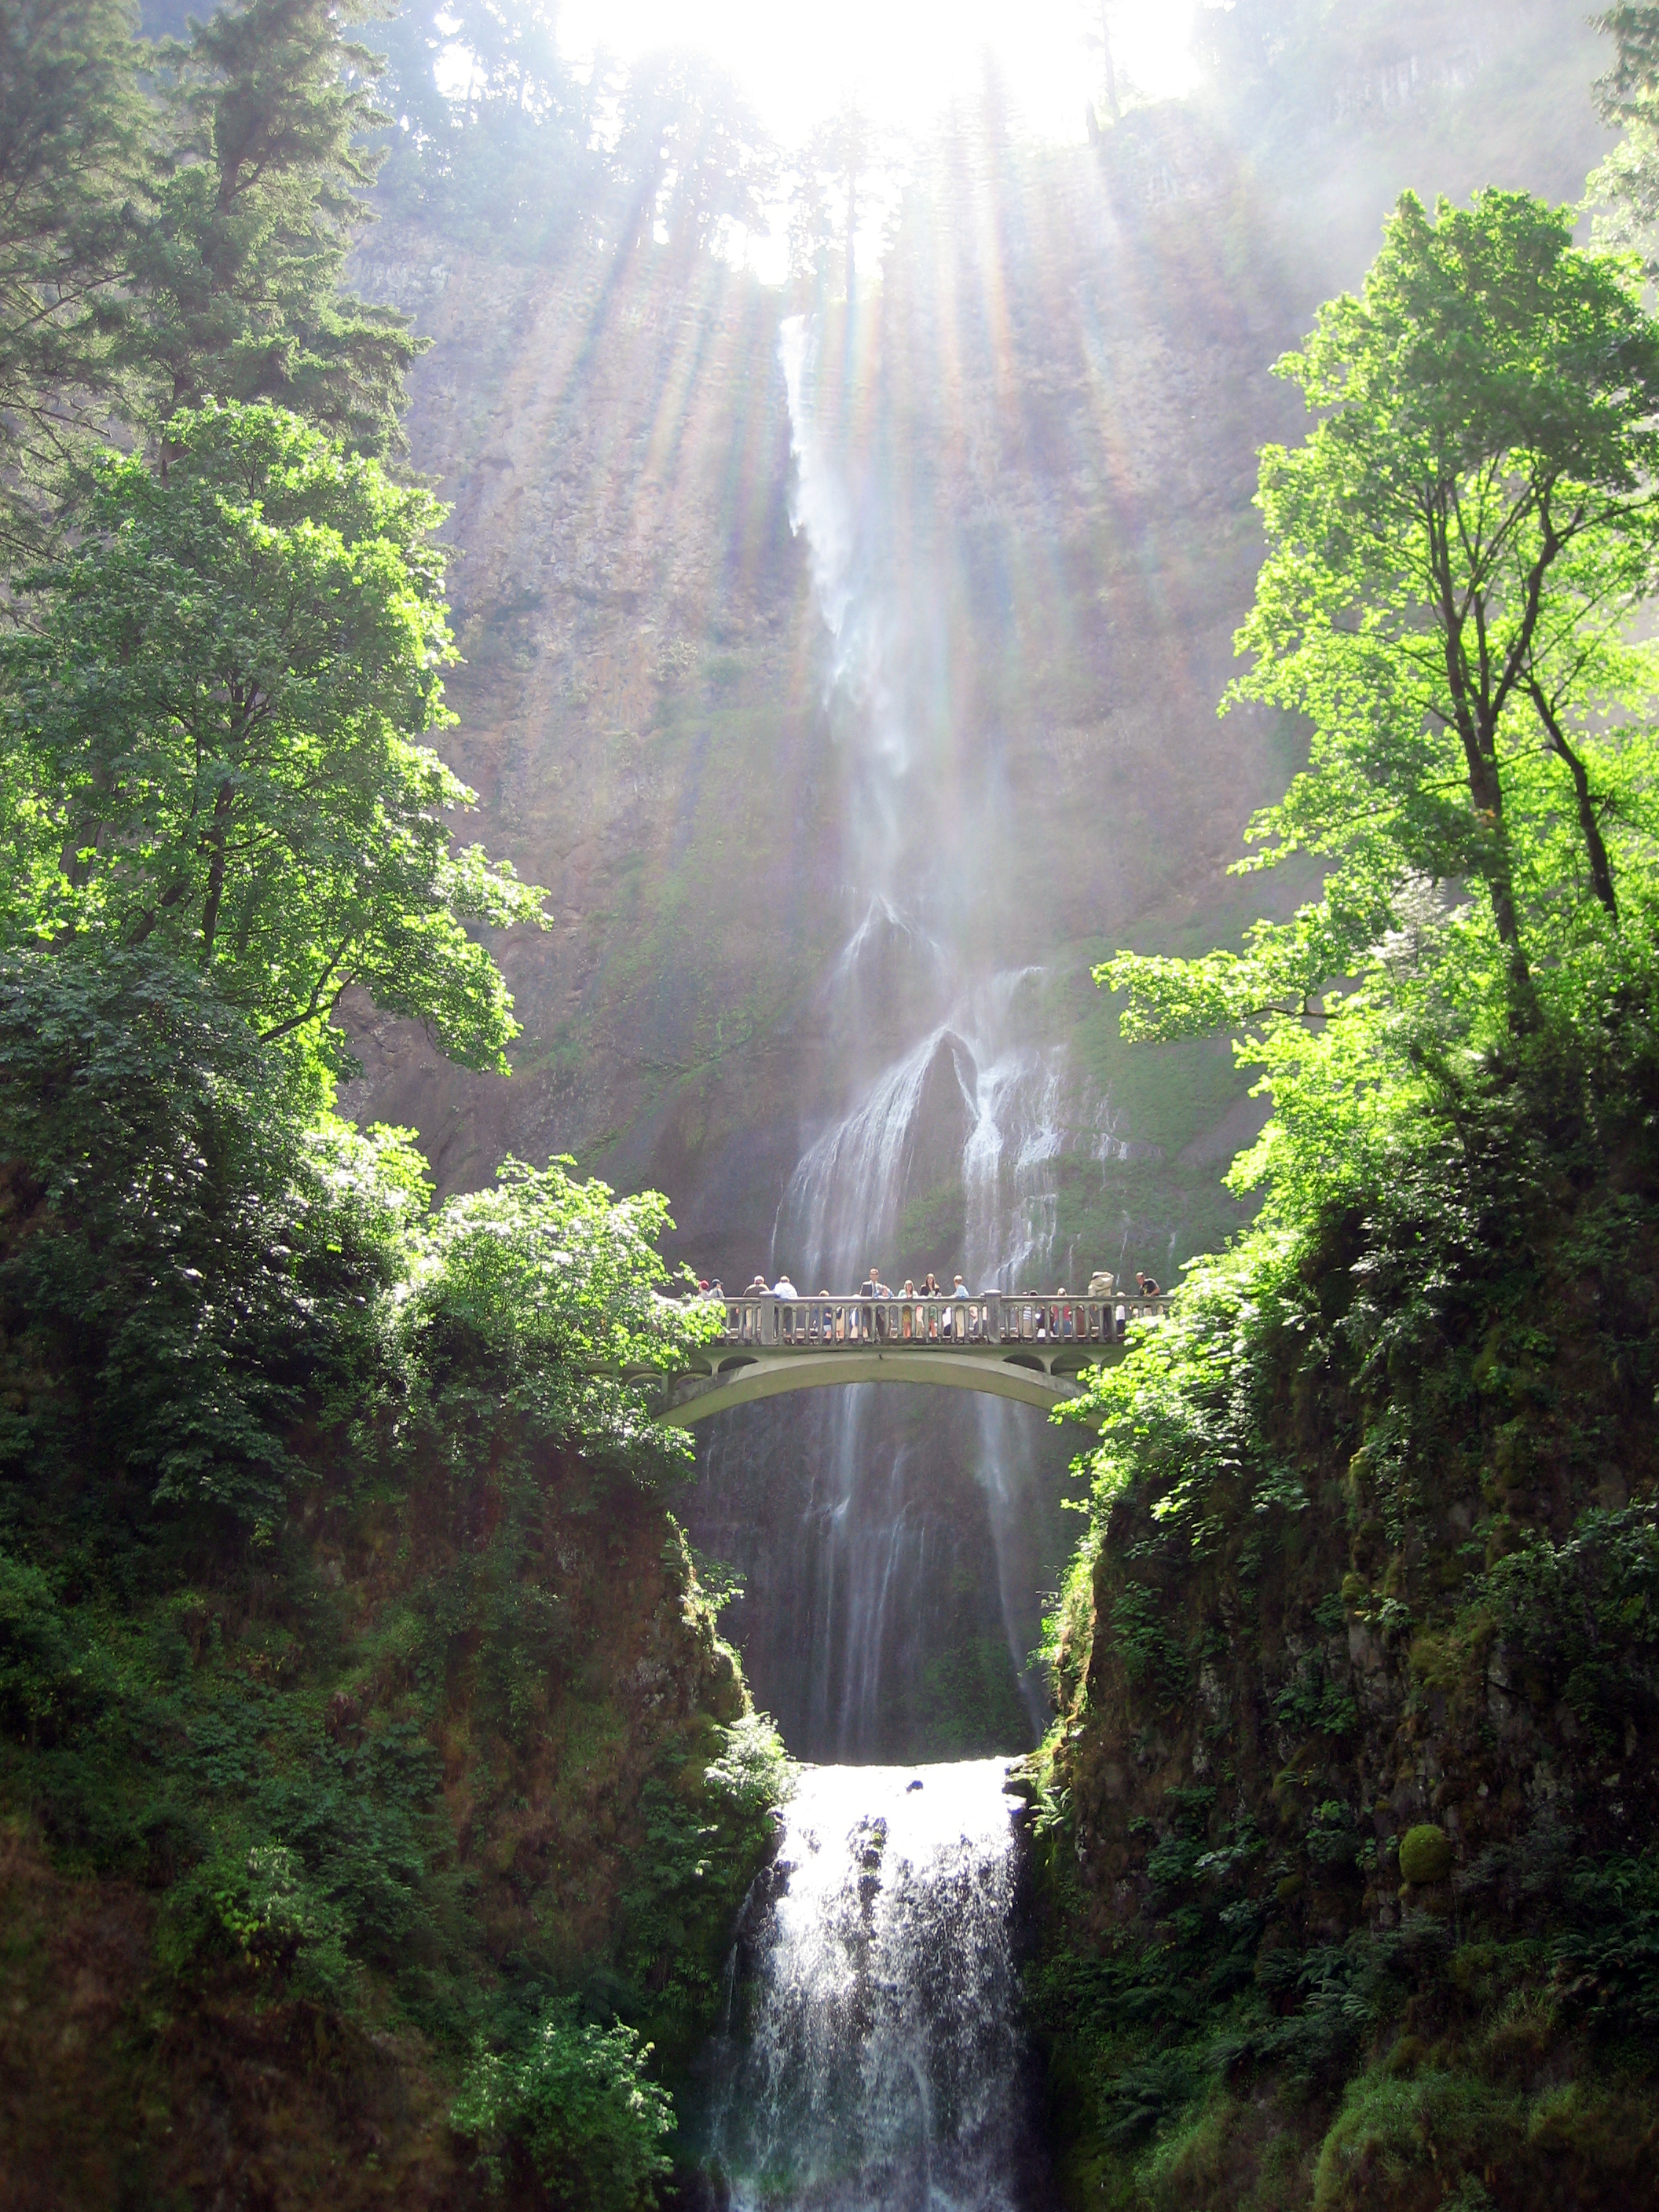 waterfalls in oregon map with File Multnomah Falls  Oregon on Oneonta Gorge Lower Oneonta Falls likewise Multnomah Falls 4051 as well Multnomah Falls Oregon Trail Loop further Multnomah Falls Oregons Tallest Waterfall further Columbia River Cruising Guide.